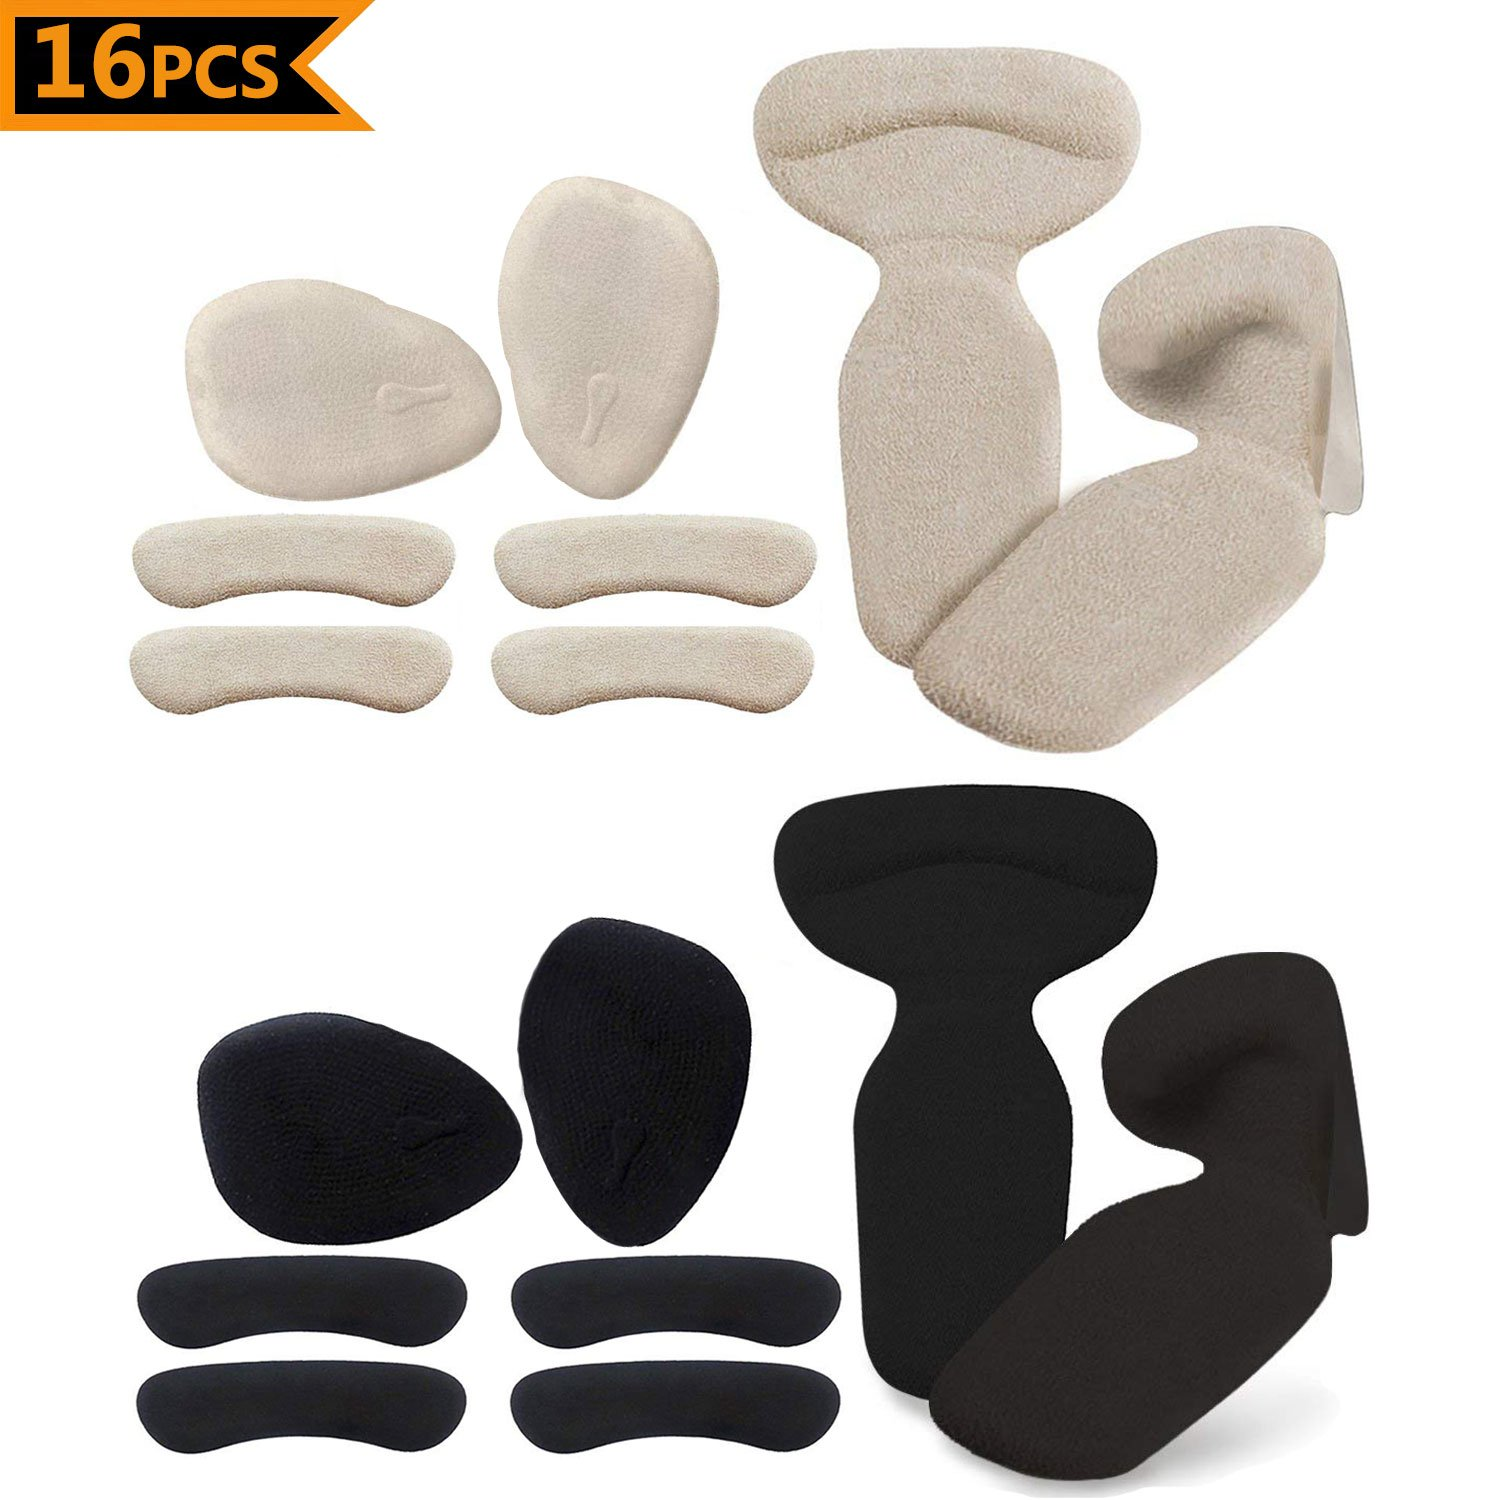 LWCUS Heel Cushion Inserts, Heel Grips Protector Pads, Shoe Filler Inserts Pads For Too Big Shoes, High Heel Insoles, Metatarsal Pain Relief Pads Ball of Foot Cushions for Women (16 pcs)